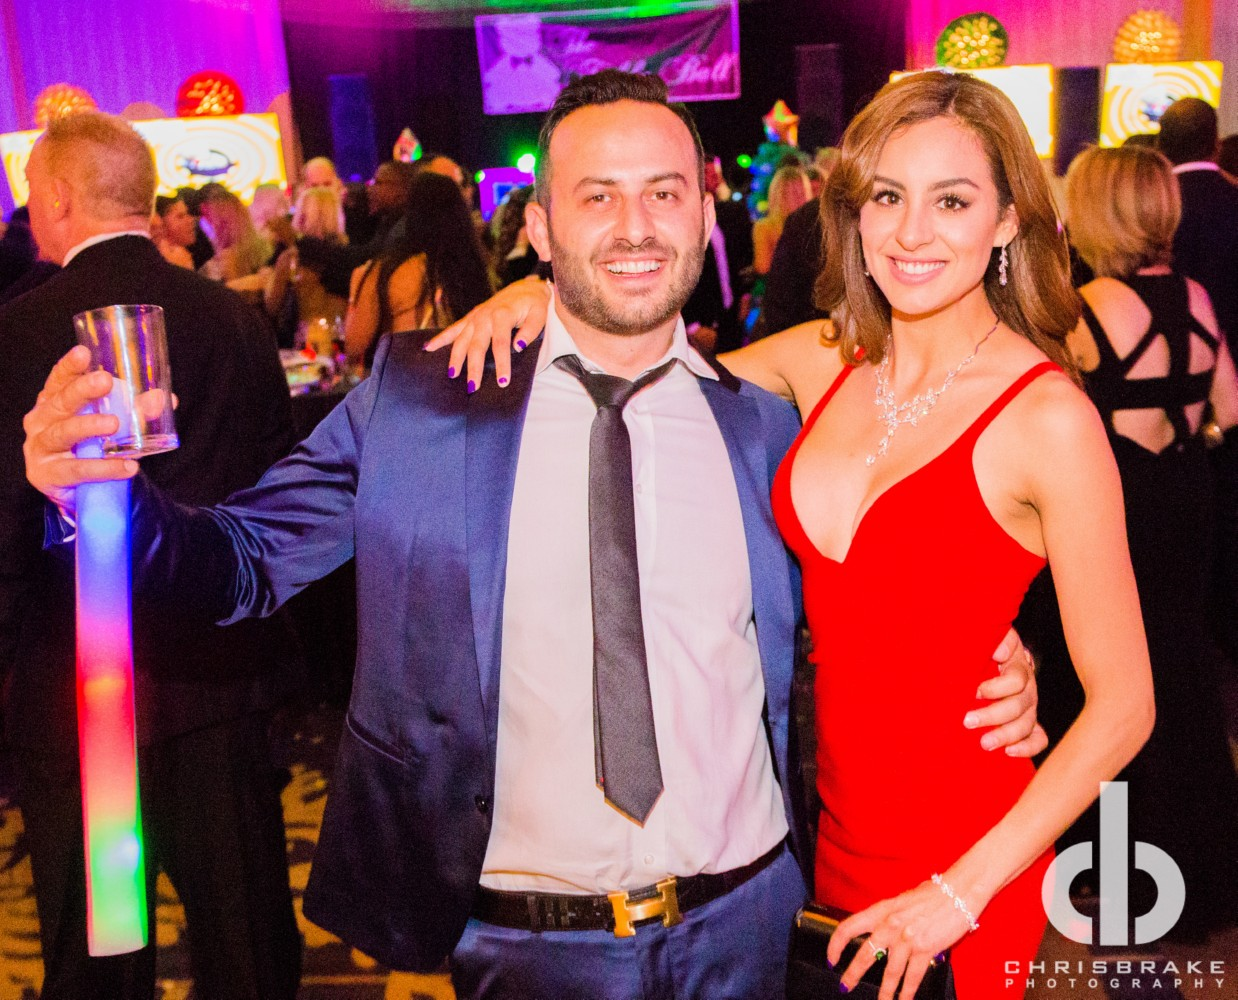 Chris_Brake_Photography_2016_Teddy_Ball - 109.jpg